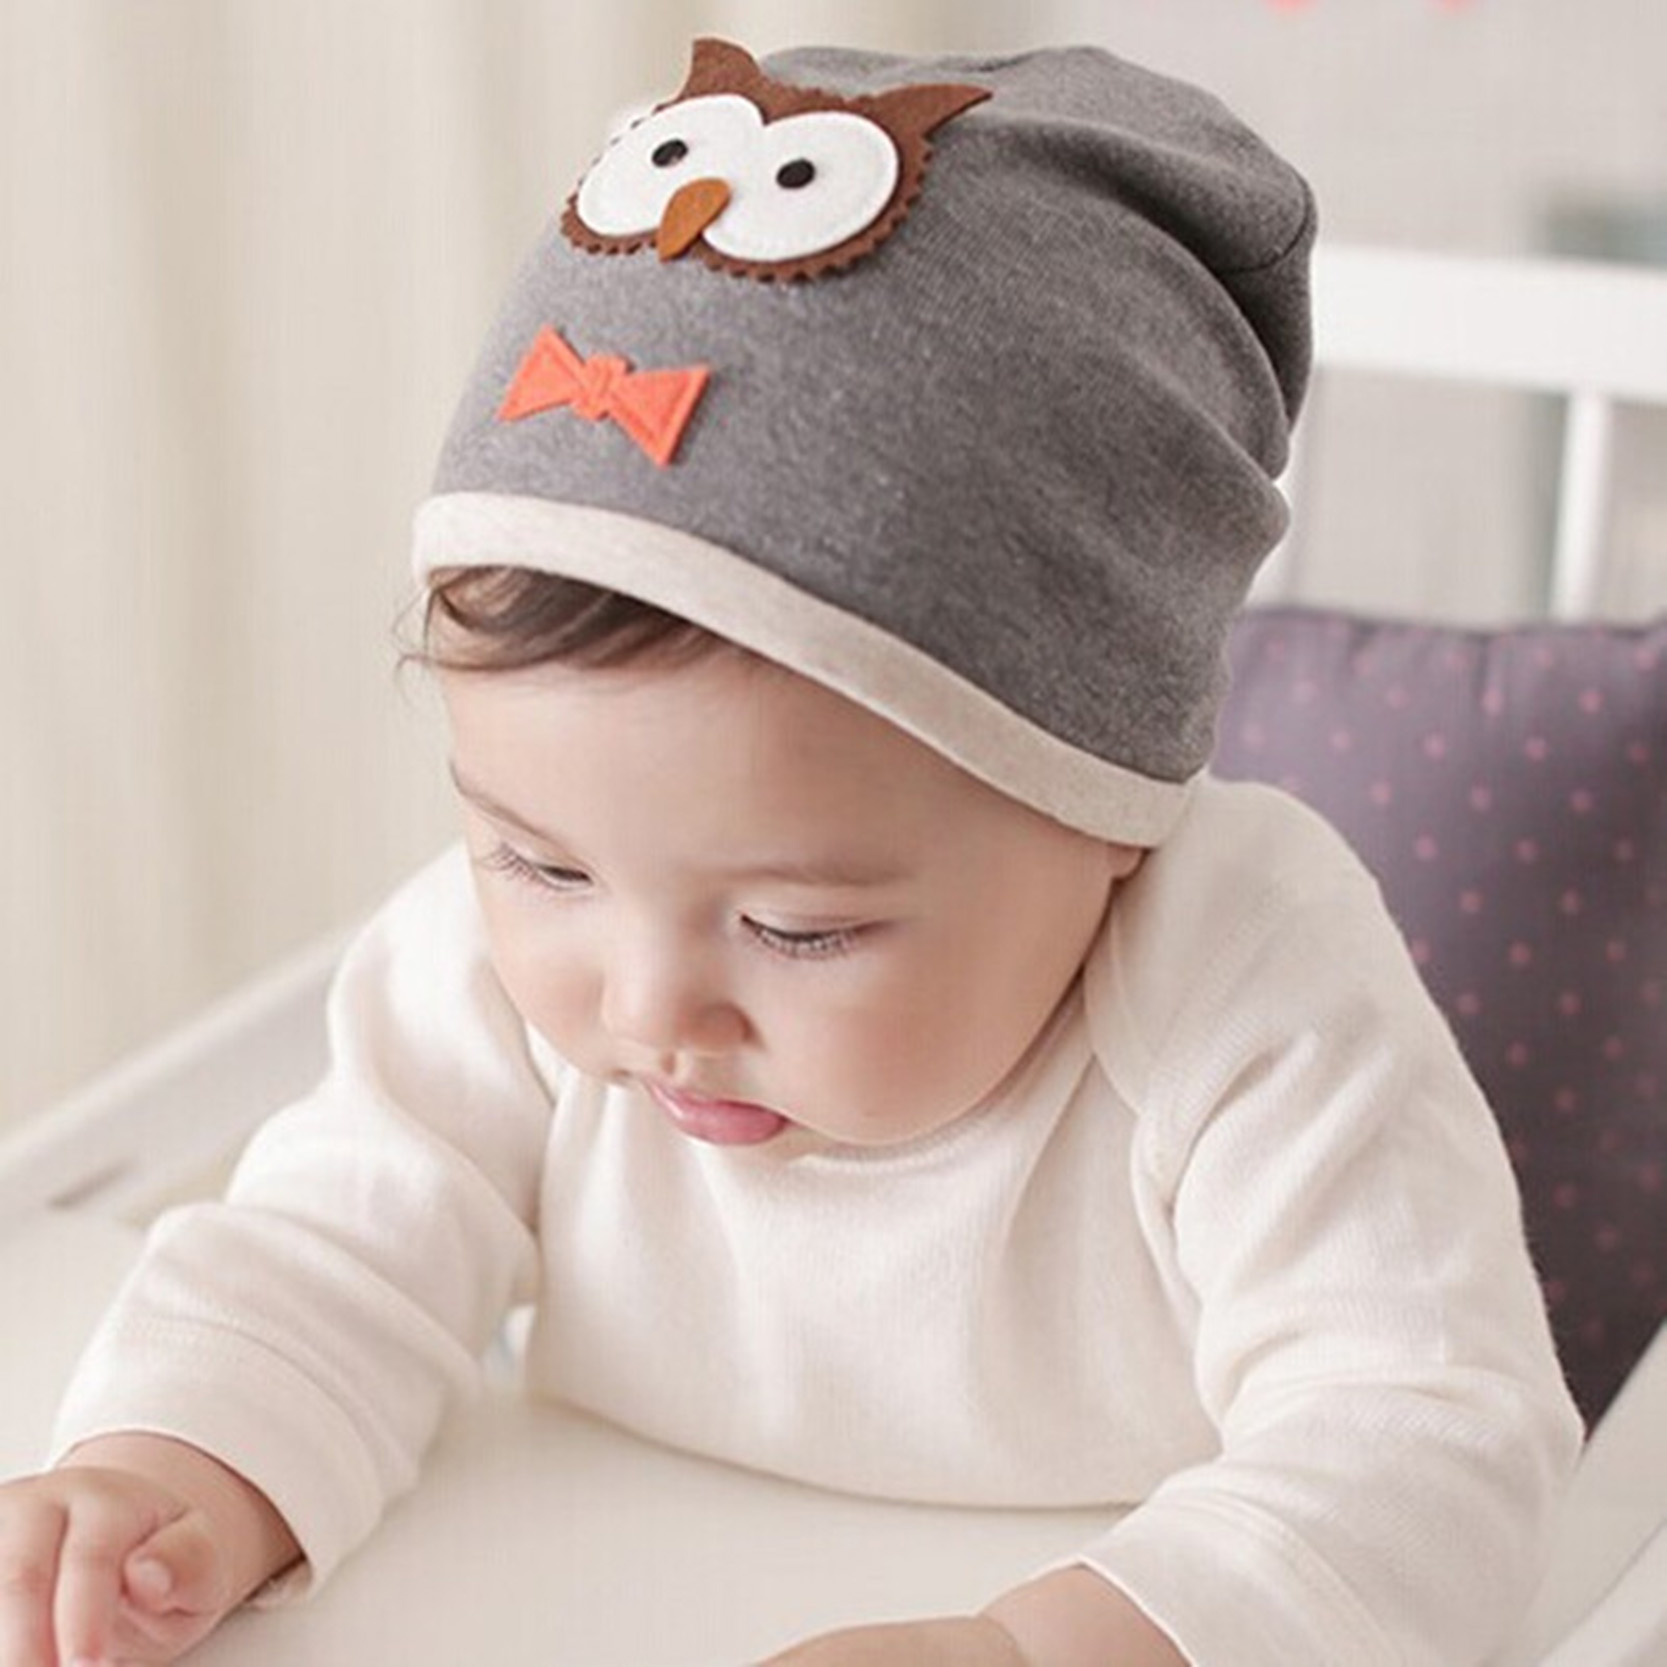 Shop for baby hats boys online at Target. Free shipping on purchases over $35 and save 5% every day with your Target REDcard.